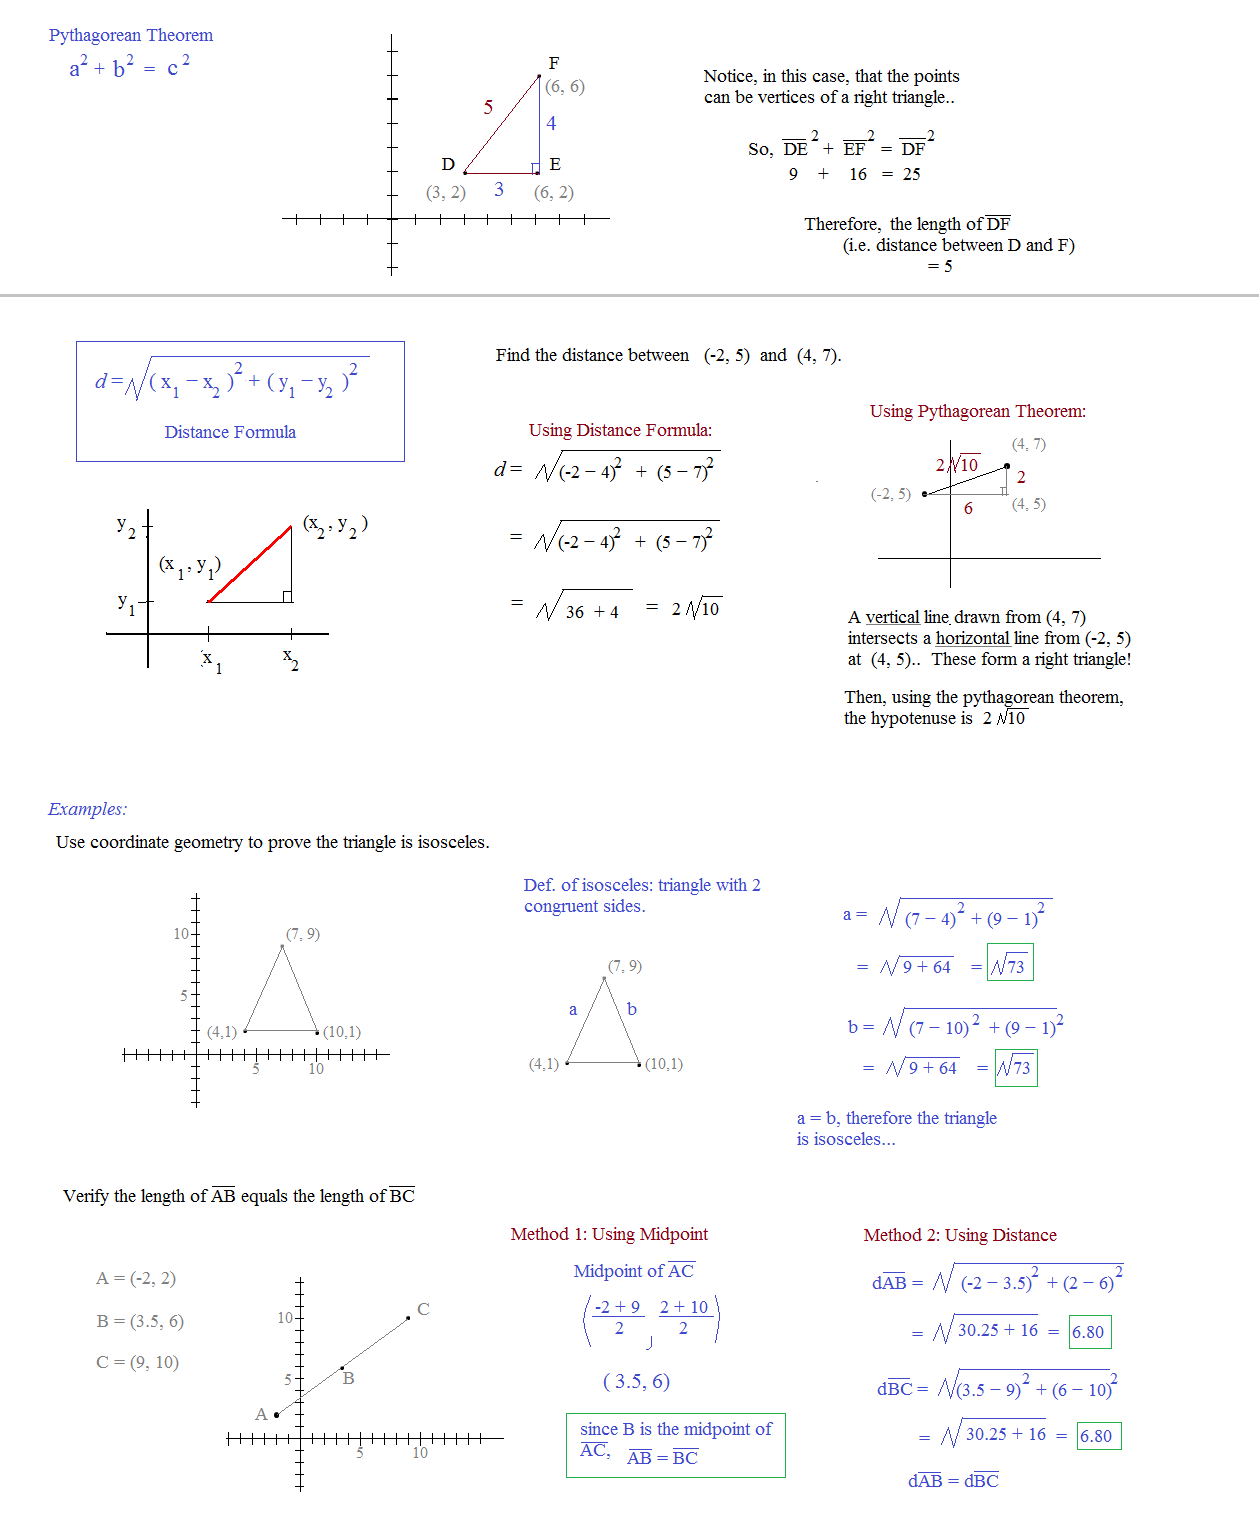 worksheet Distance Formula Word Problems Worksheet distance formula worksheet pythagorean theorem pdf word problems download free games coordinate geometry review notes 4 formula